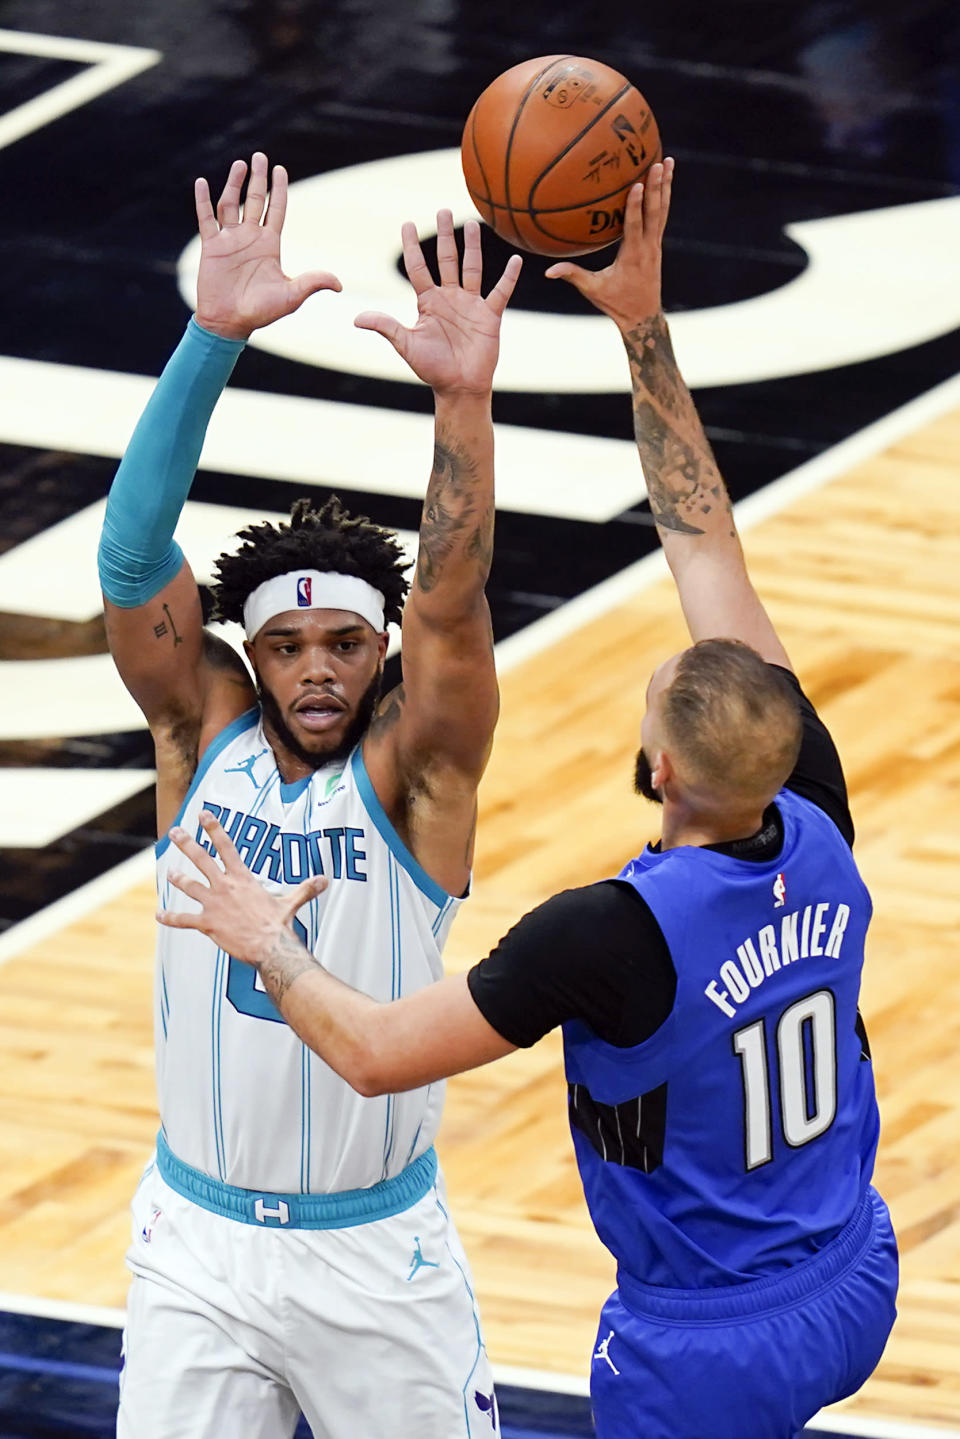 Orlando Magic guard Evan Fournier, right, takes a shot over Charlotte Hornets forward Miles Bridges, left, during the first half of an NBA basketball game, Sunday, Jan. 24, 2021, in Orlando, Fla. (AP Photo/John Raoux)